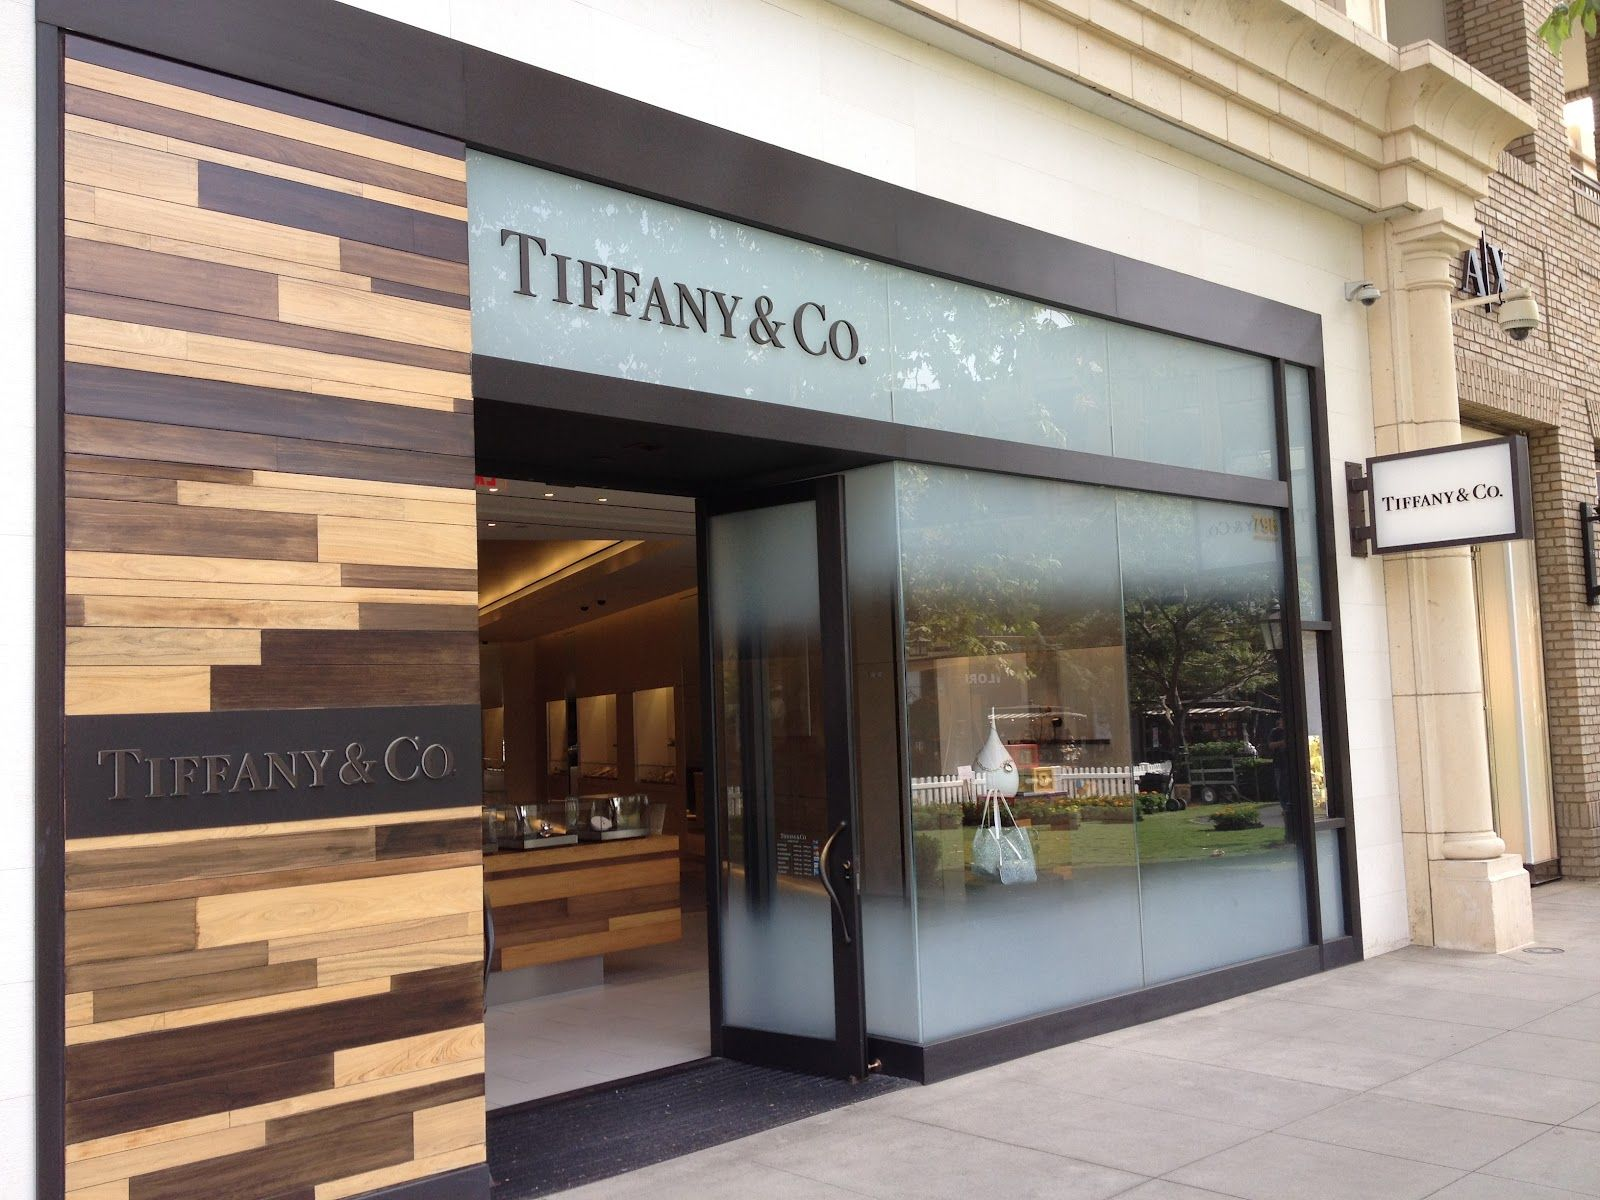 Exterior Wood Work And Metal Tiffany Co American At Brand Glendale CA Retail Interior DesignGreen